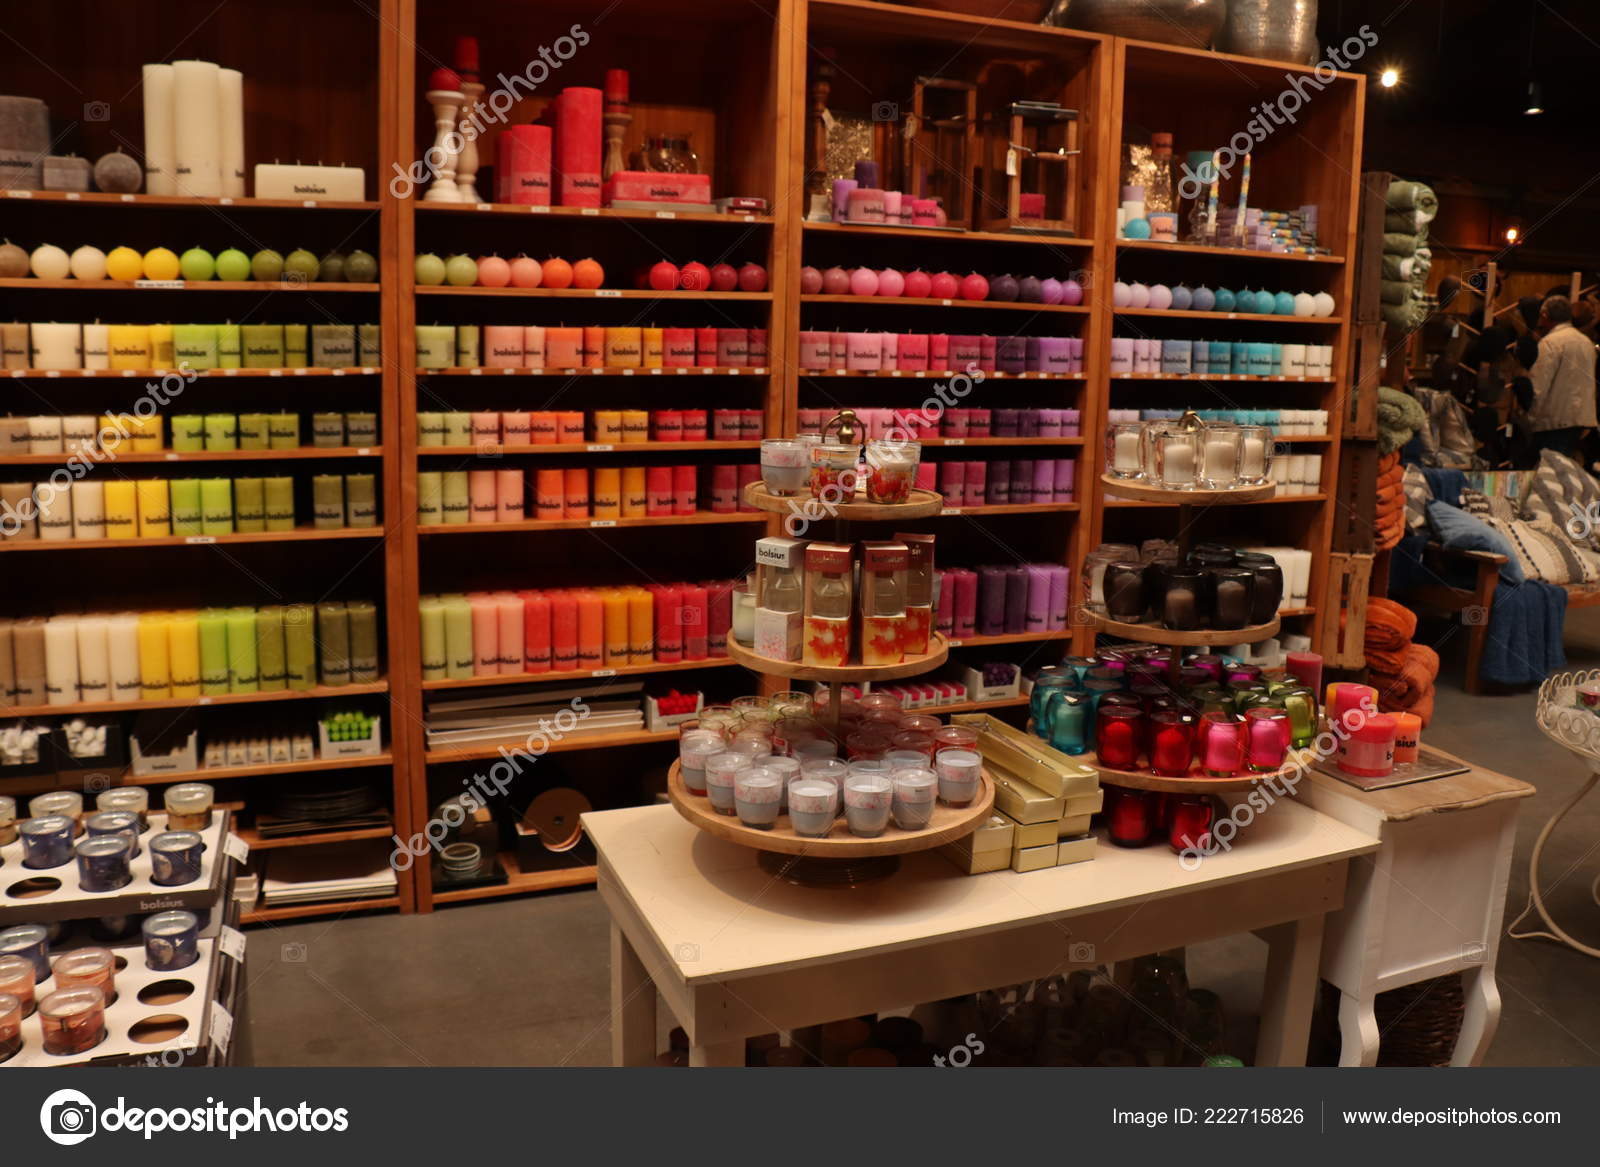 Cruquius Netherlands October 26Th 2018 Candles Display Home Decoration Store  U2014 Stock Photo